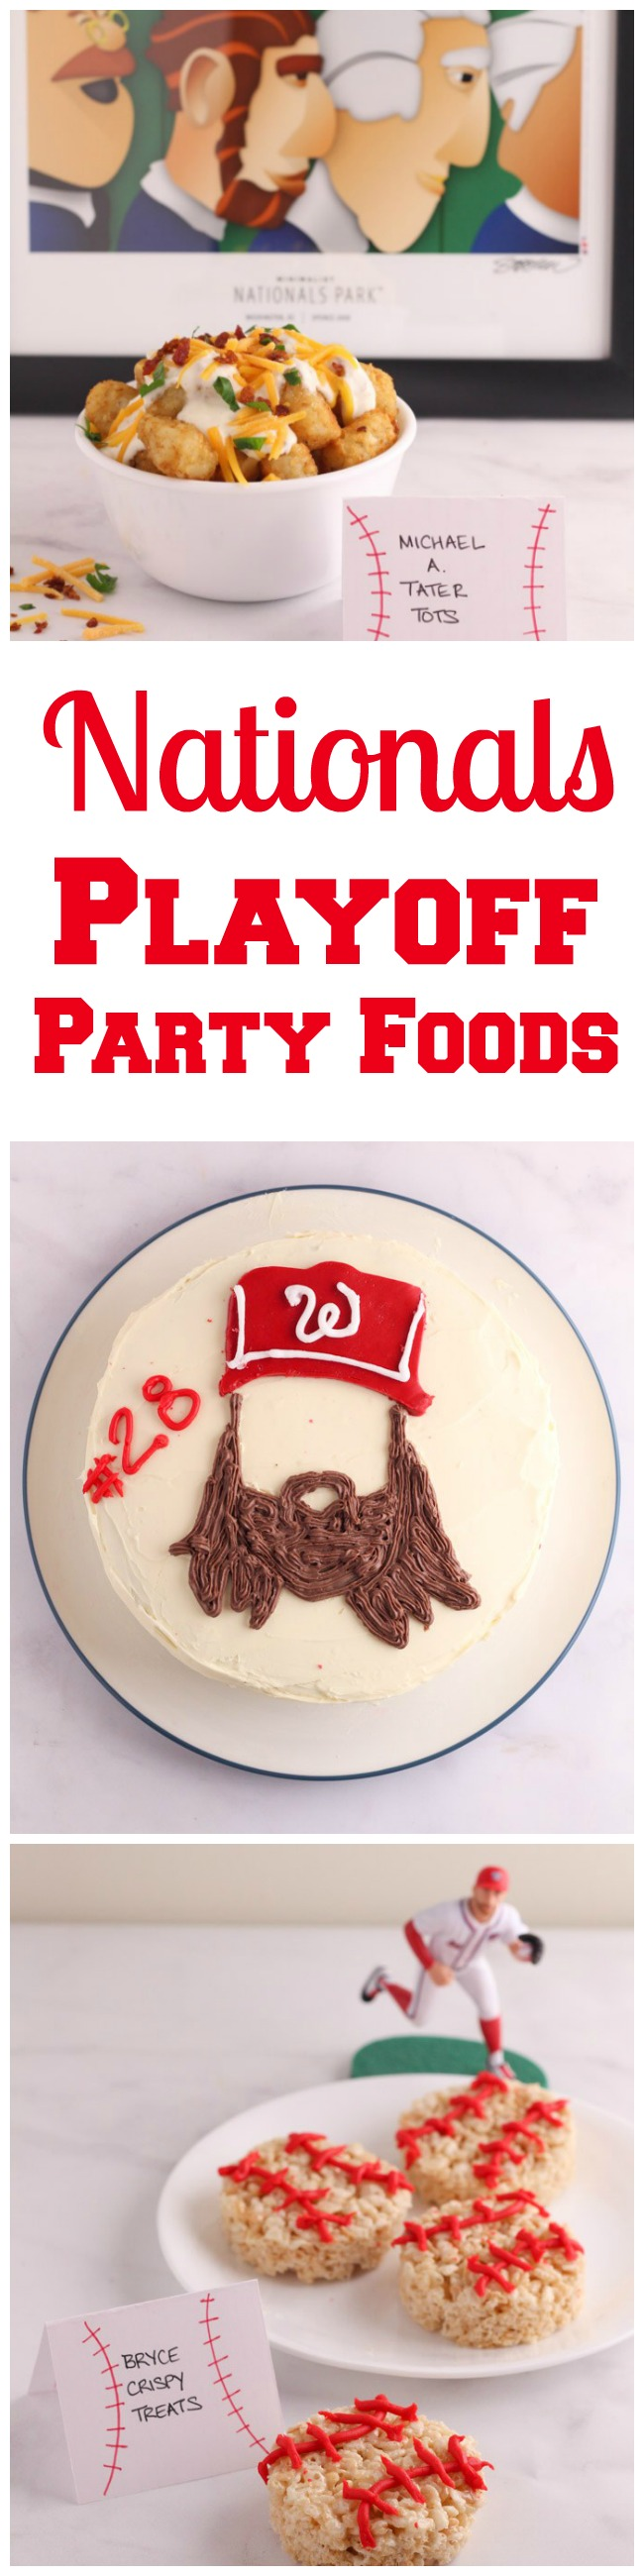 8 ideas for Washington Nationals themed foods - perfect to serve for a playoff game or any time you want to celebrate your favorite baseball team.